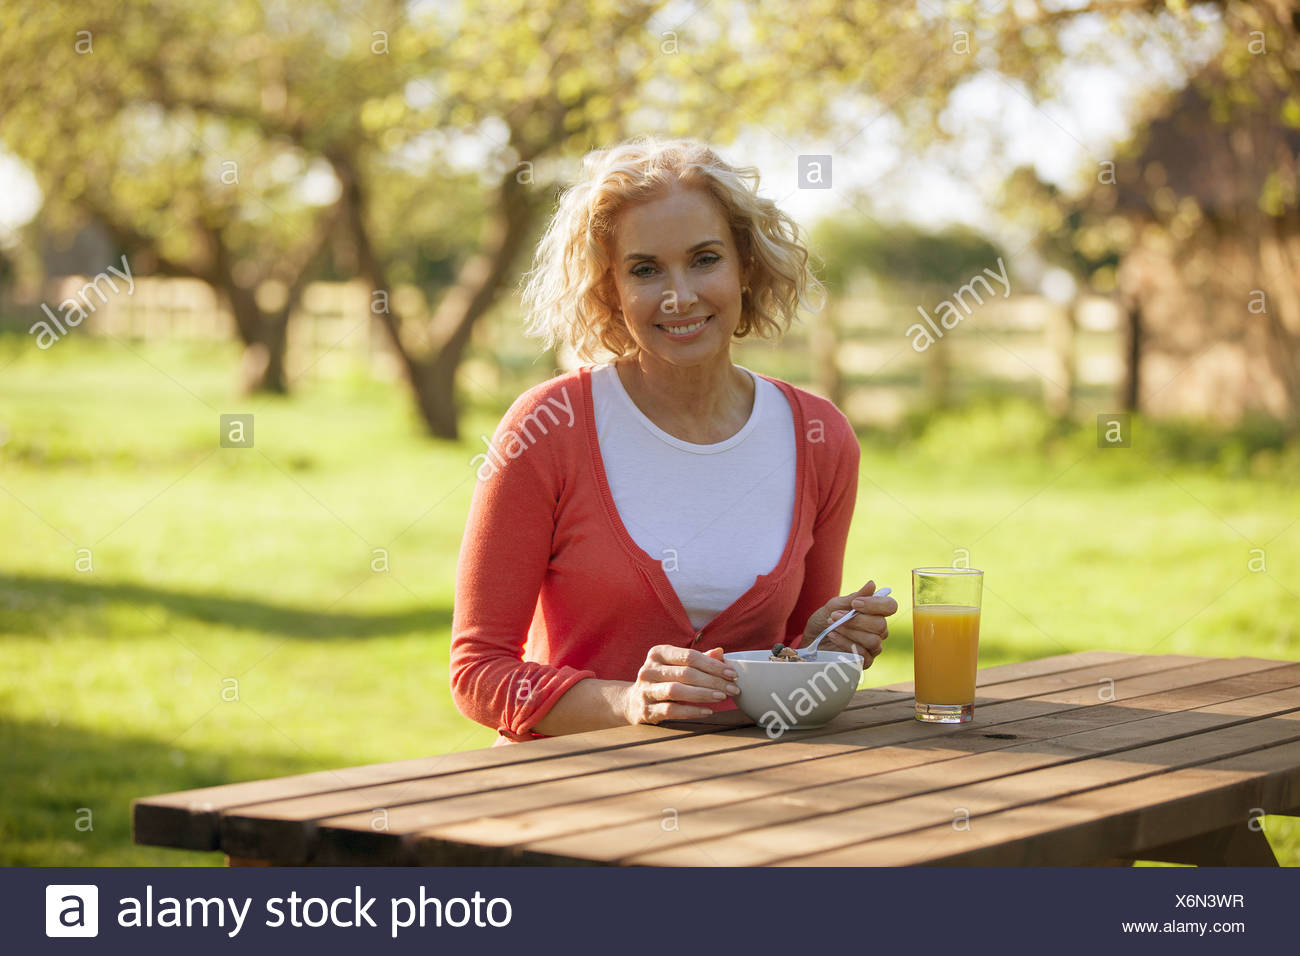 A mature woman sitting at a garden bench eating breakfast Photo Stock